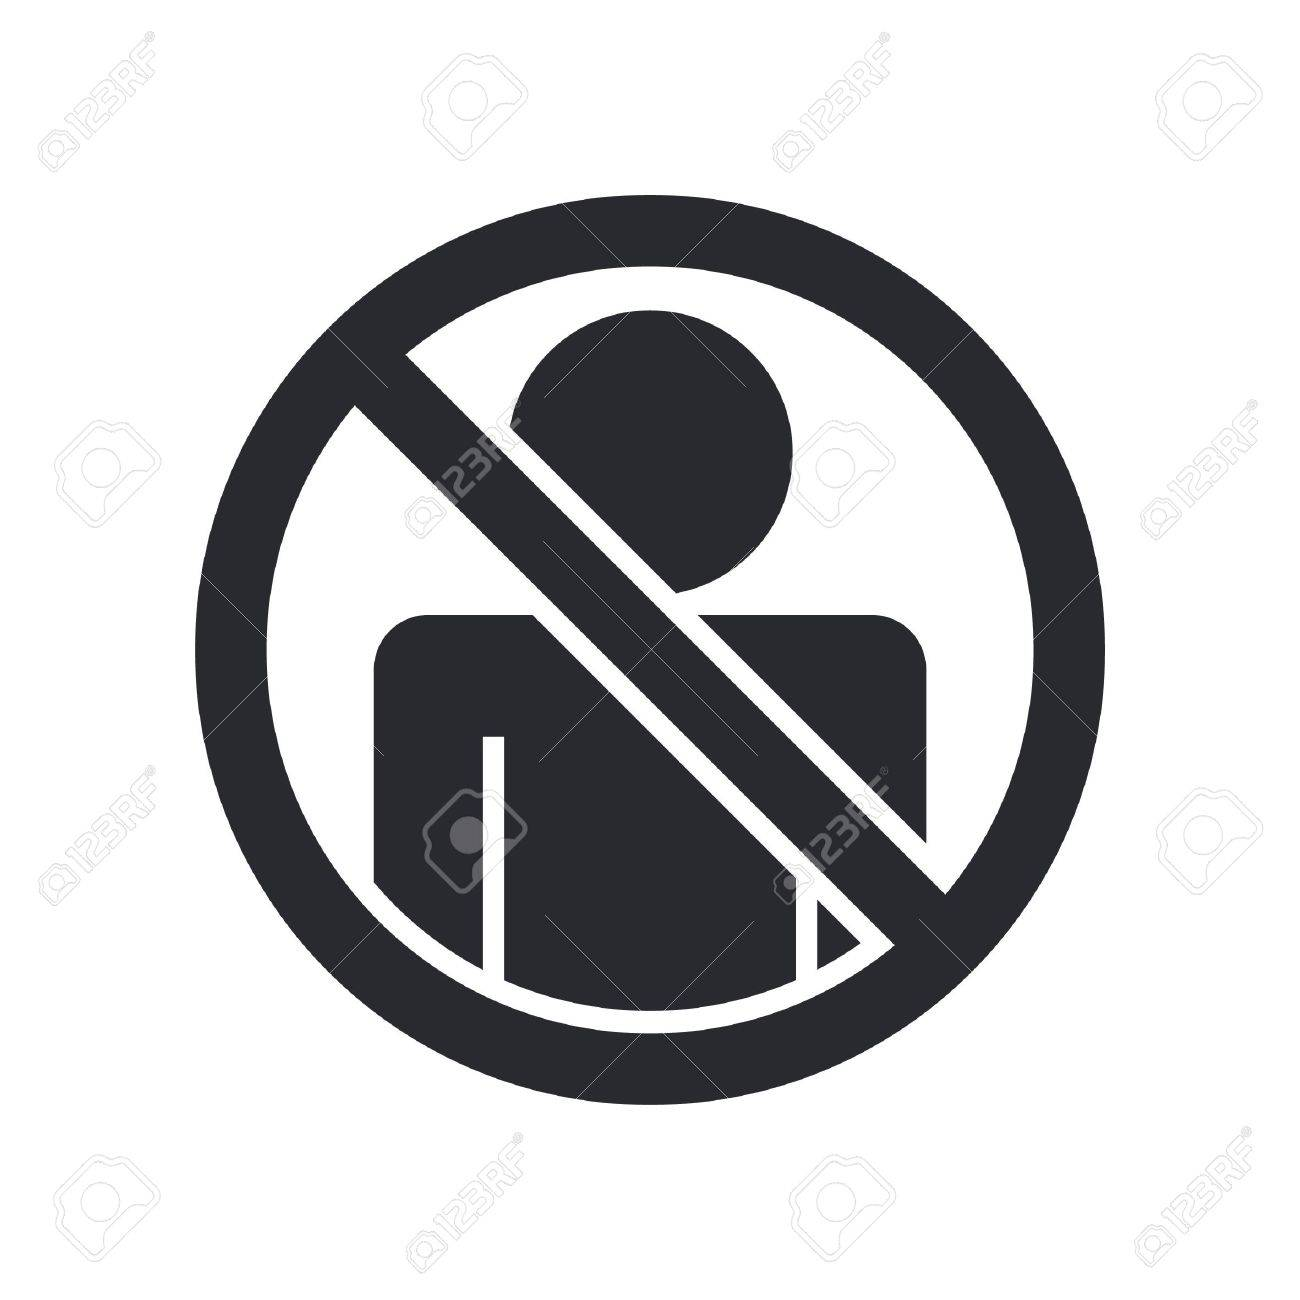 Vector illustration of single isolated access forbidden icon Stock Vector - 12119947